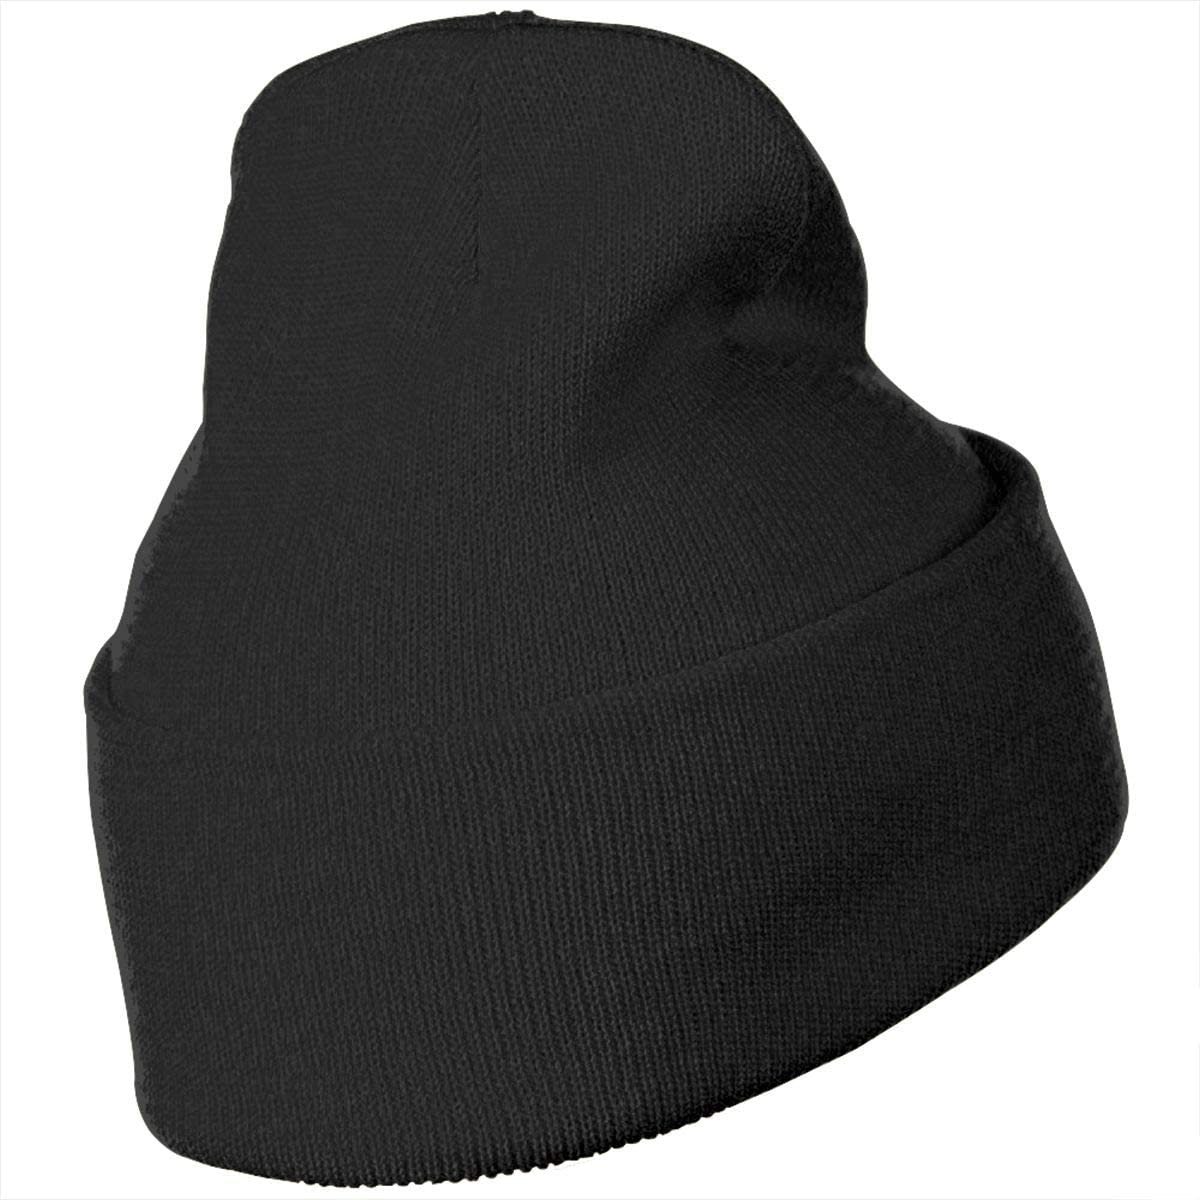 JimHappy Flat Space Hat for Men and Women Winter Warm Hats Knit Slouchy Thick Skull Cap Black